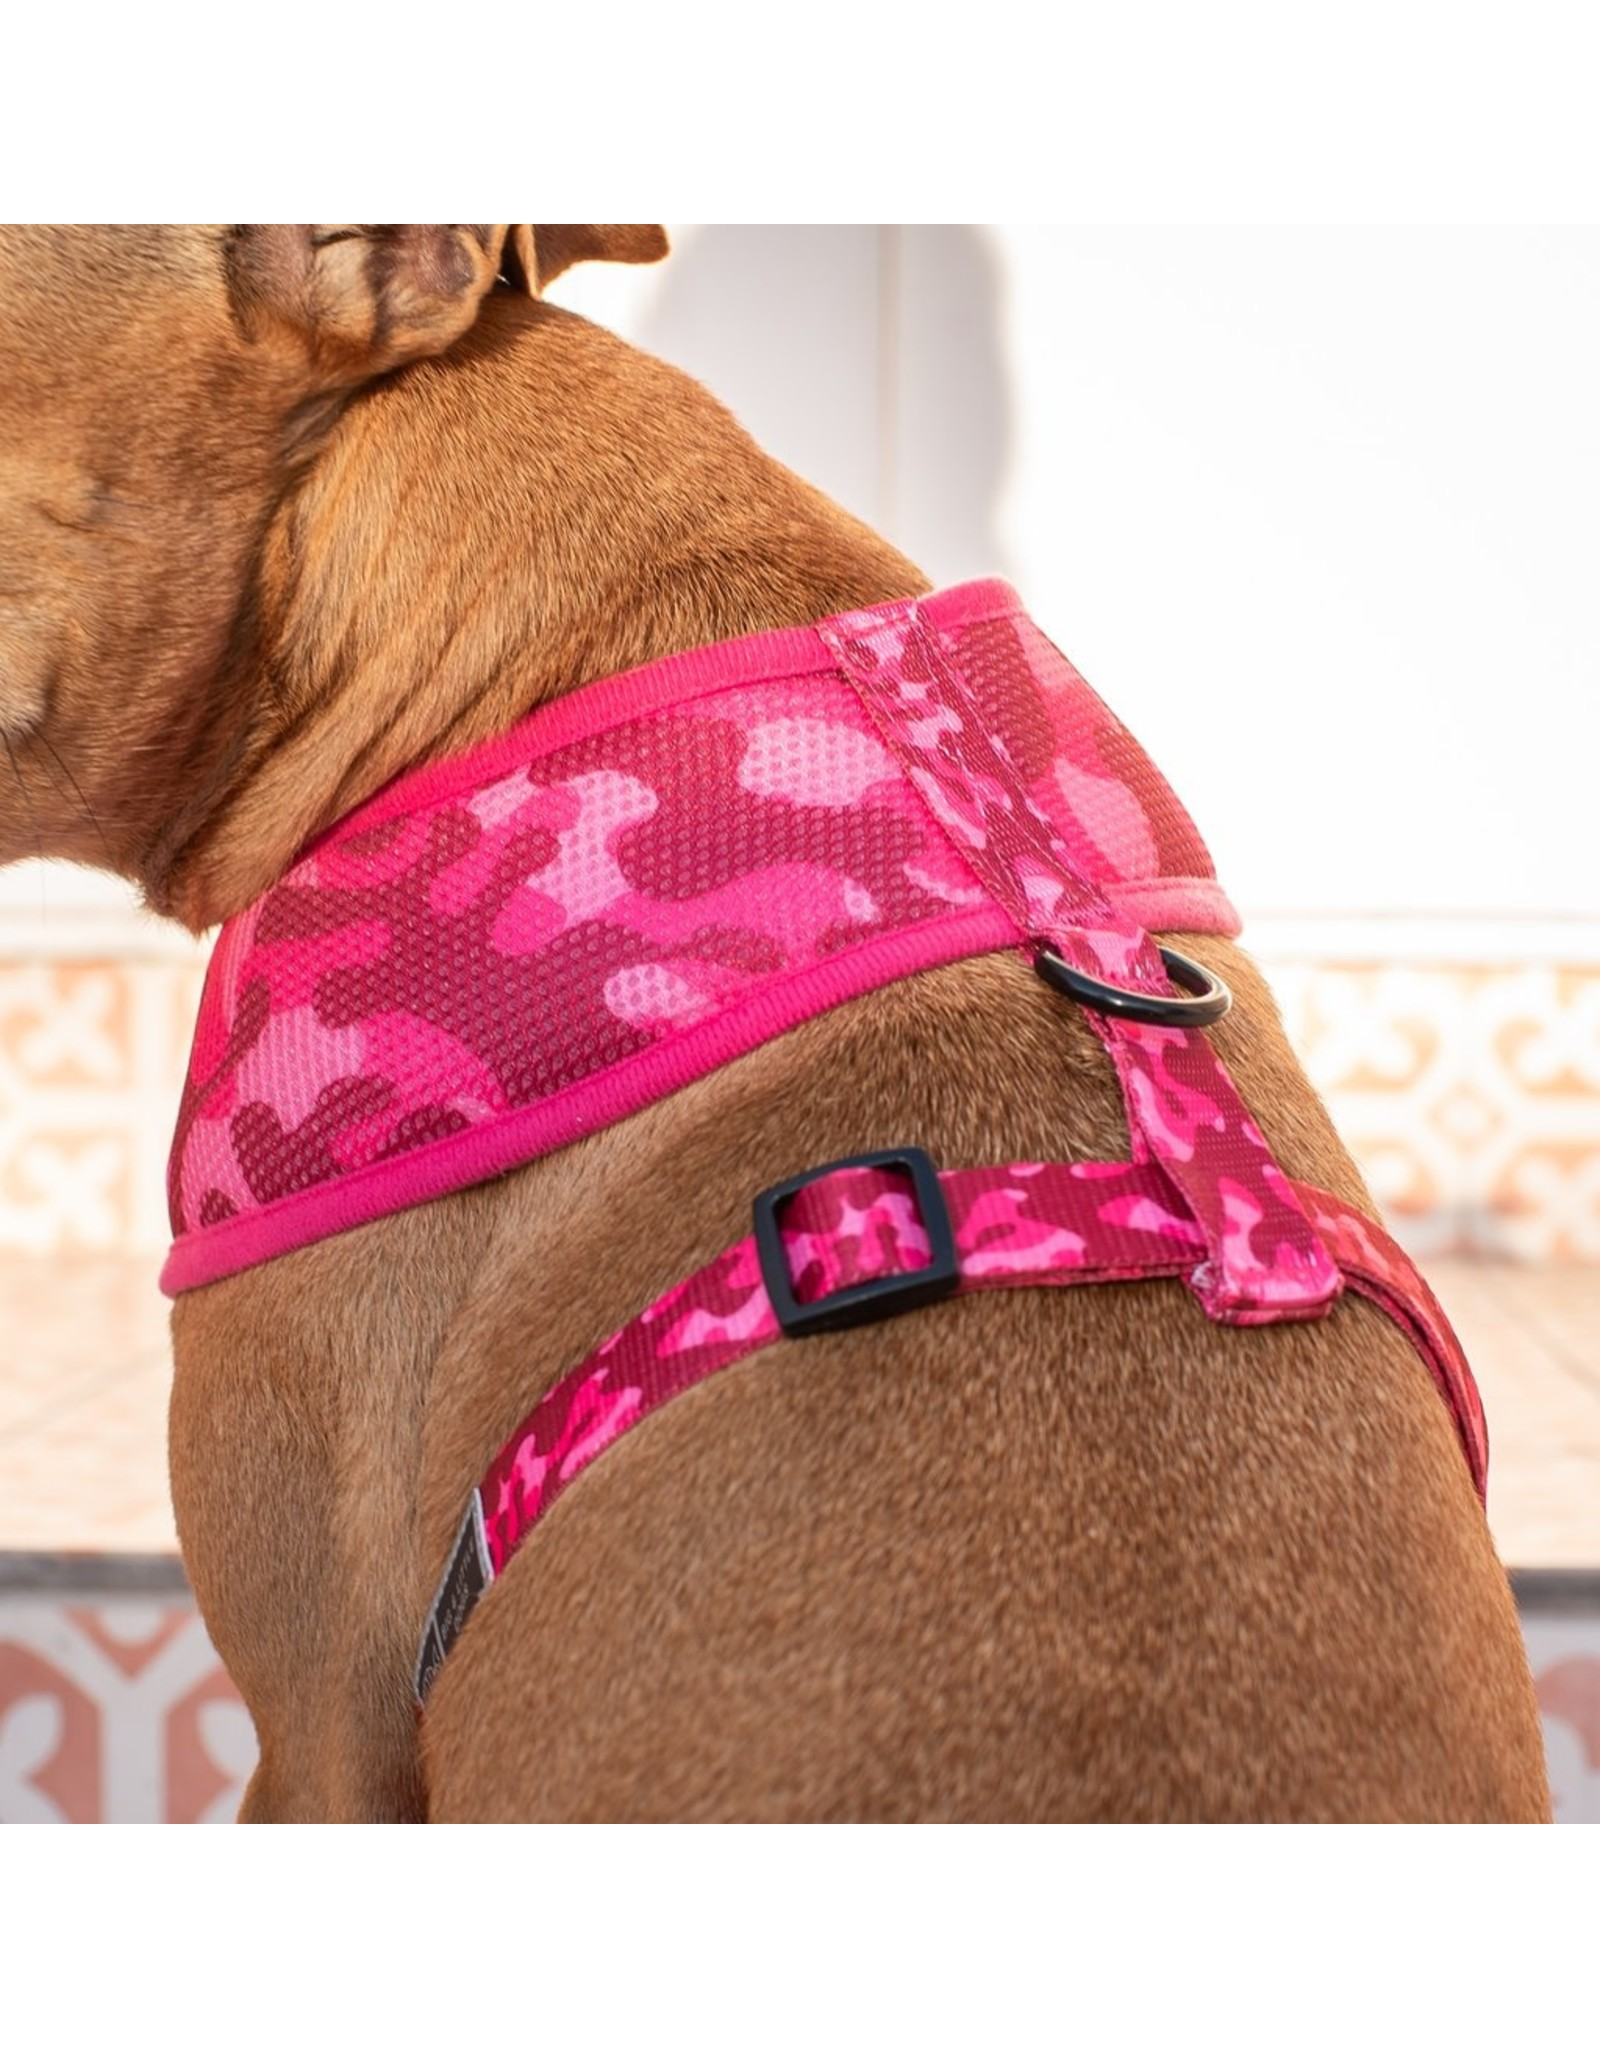 Big and Little Dogs Big & Little Dogs Classic Harness Pink Camo